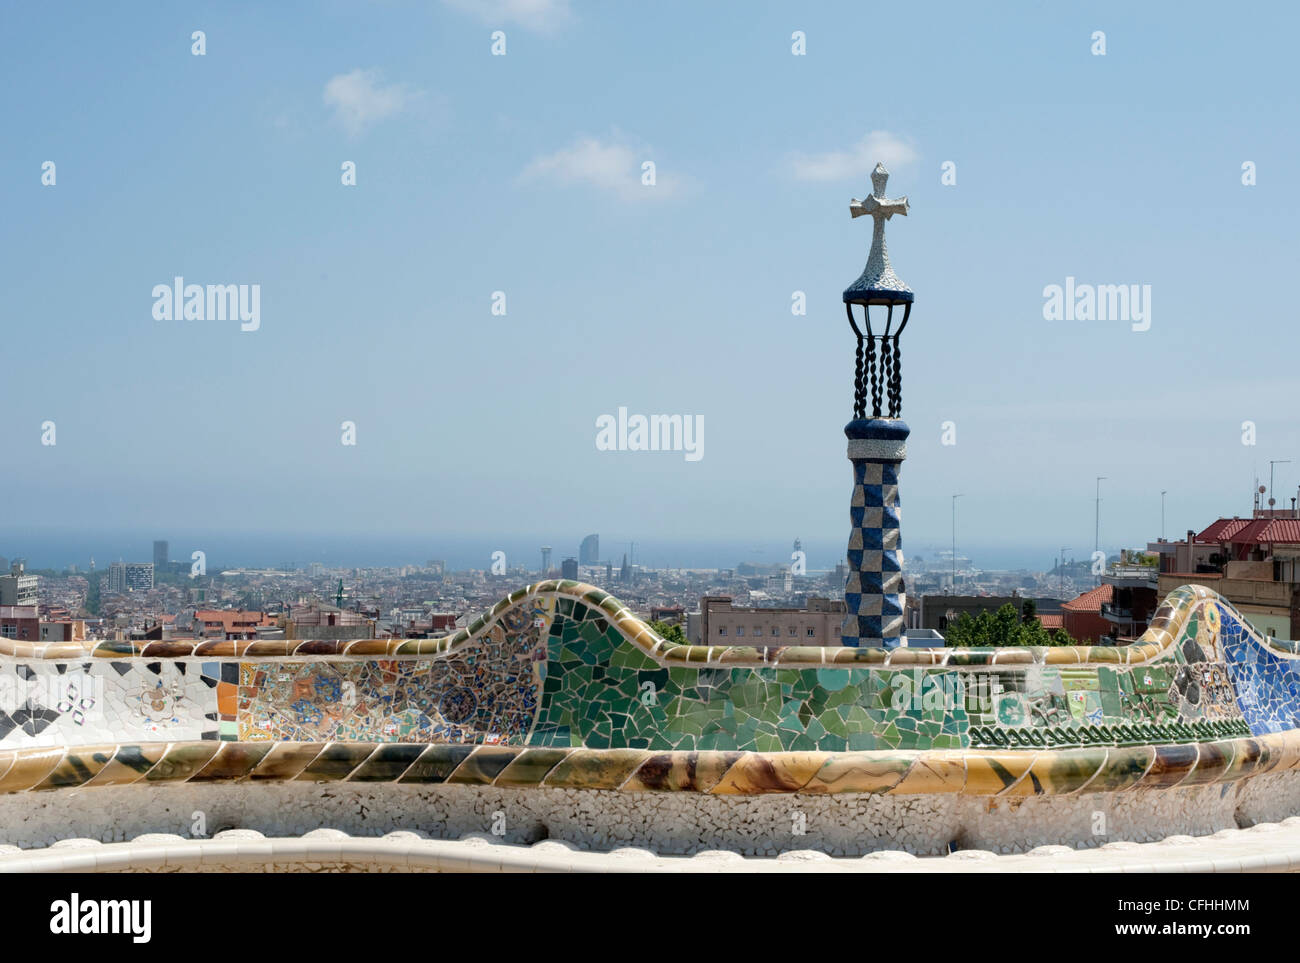 The sea serpent tiled mosaic bench in the main terrace of Park Guell with a cross and Barcelona in the distance. - Stock Image